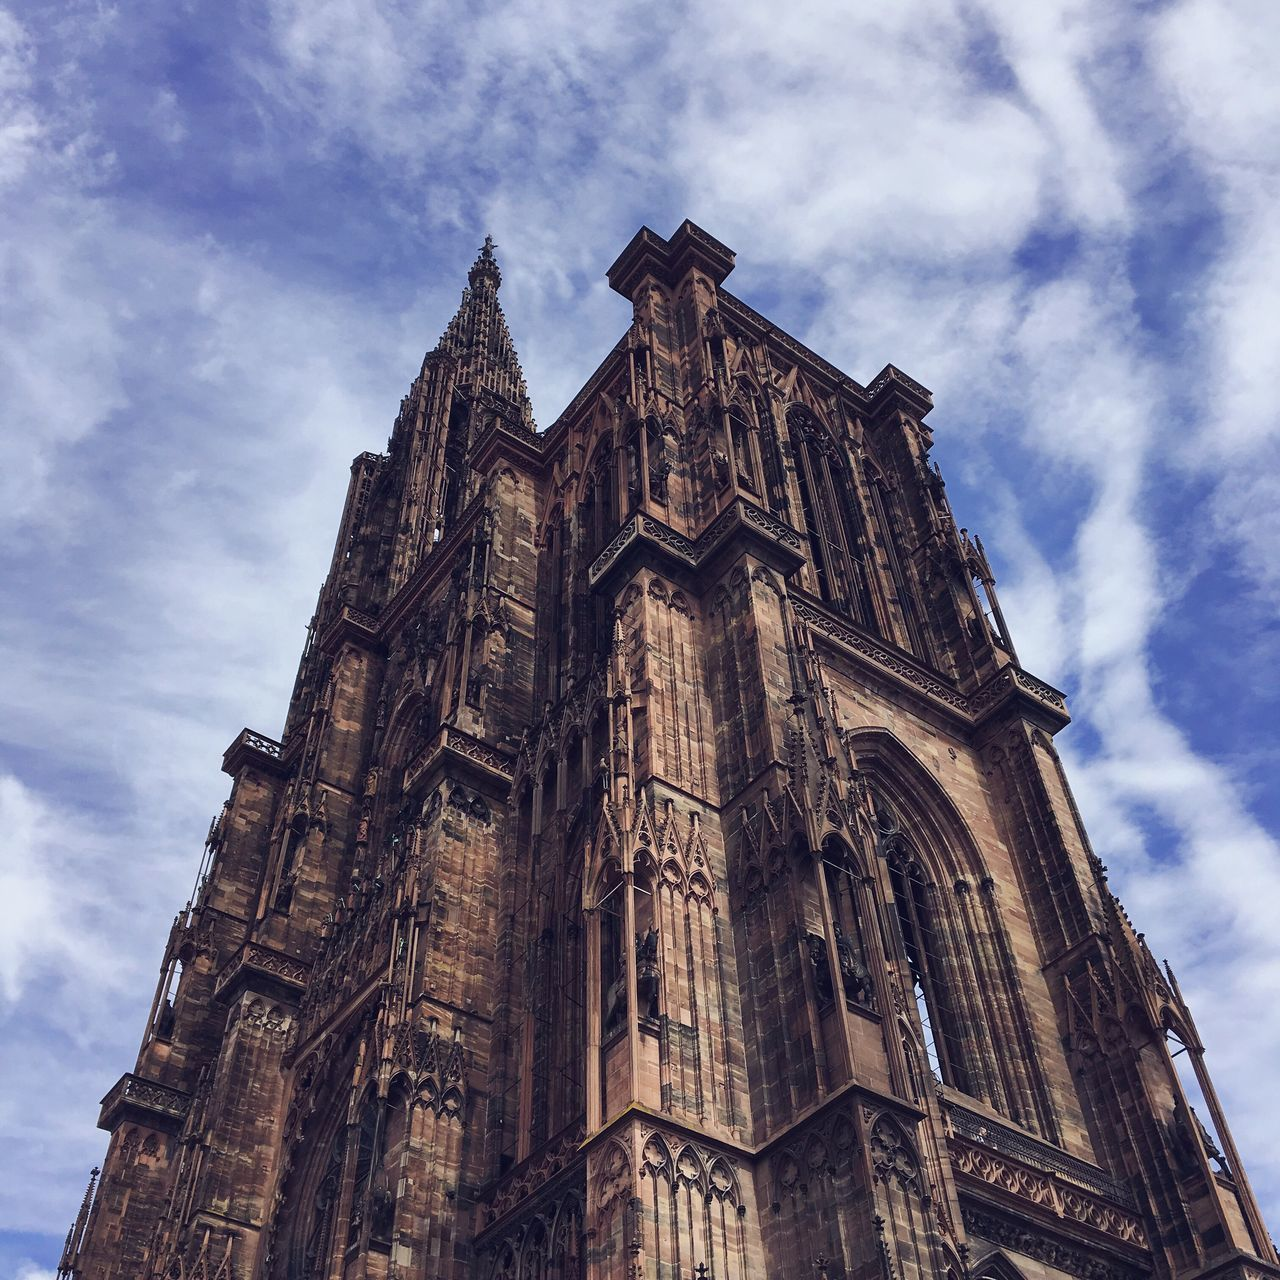 Travel Traveling Travel Photography Photography France Frankreich Strasbourg Straßburg Dom Munsters Beautiful Light Architecture Bestoftheday • Reisen Reisefotografie Foto Top Perspective Perspective Photography Architektur Best